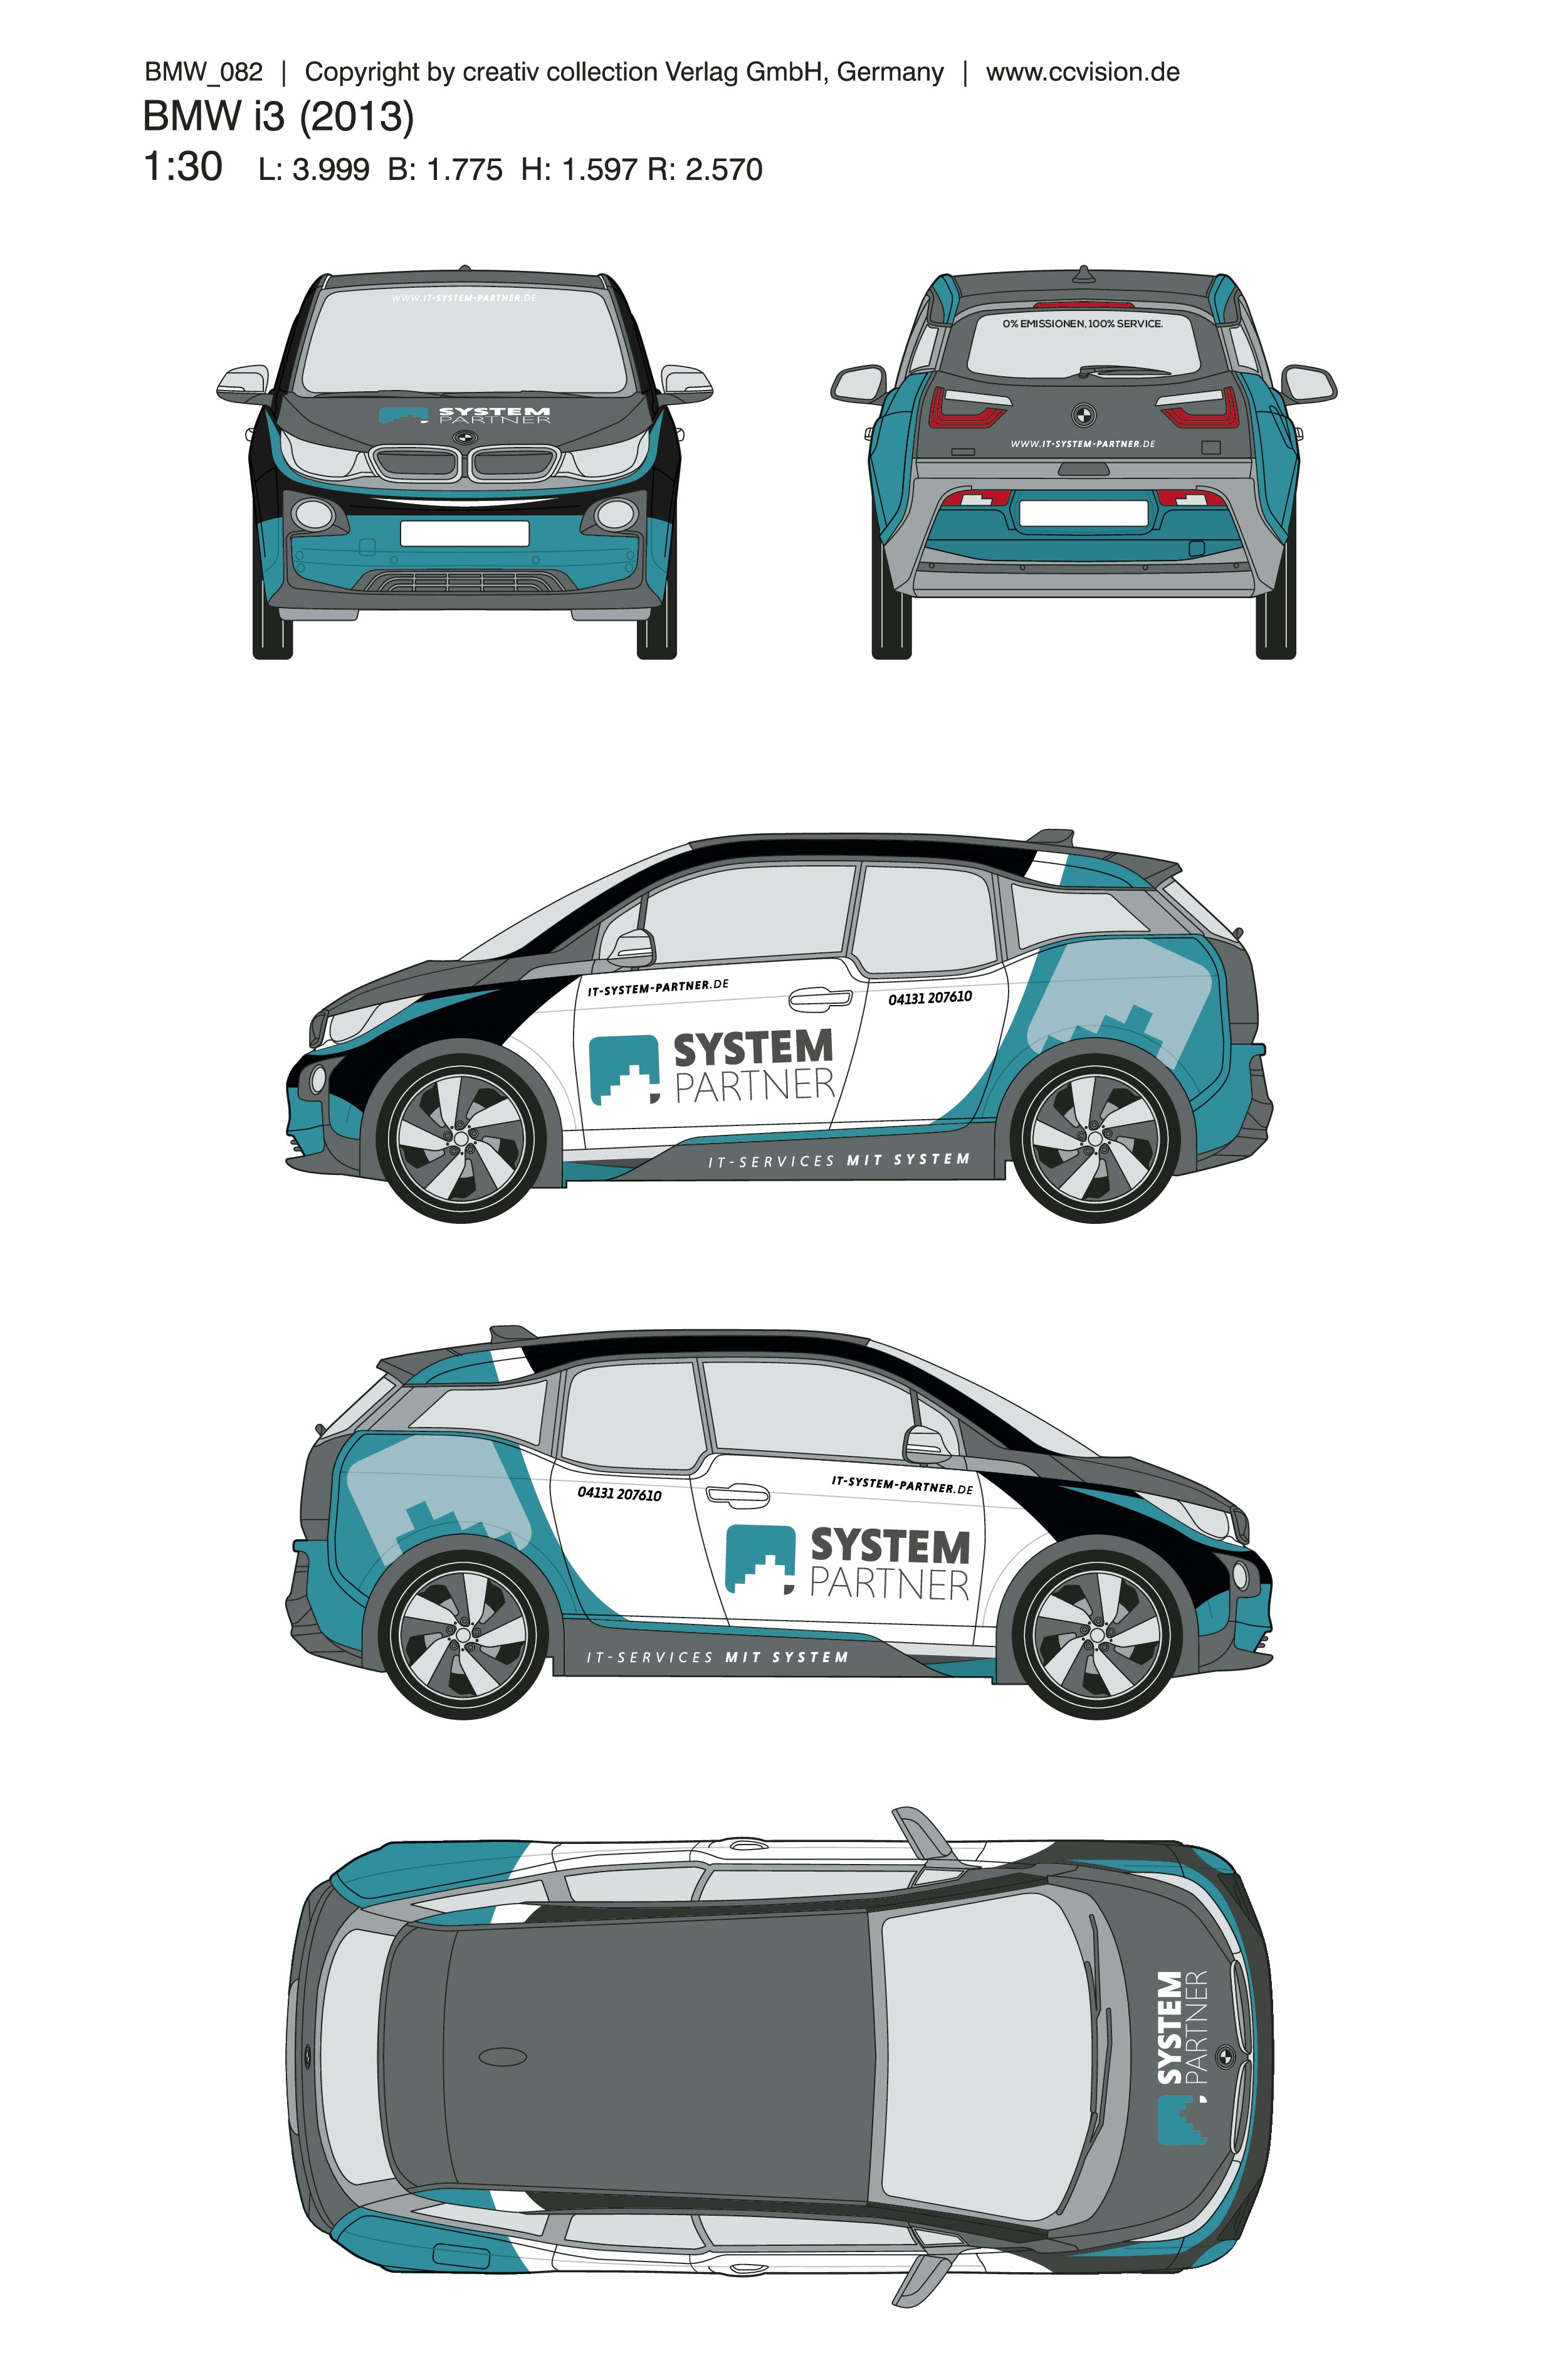 Be creative and design our car branding! And if you suceed: We have more than one car...;)